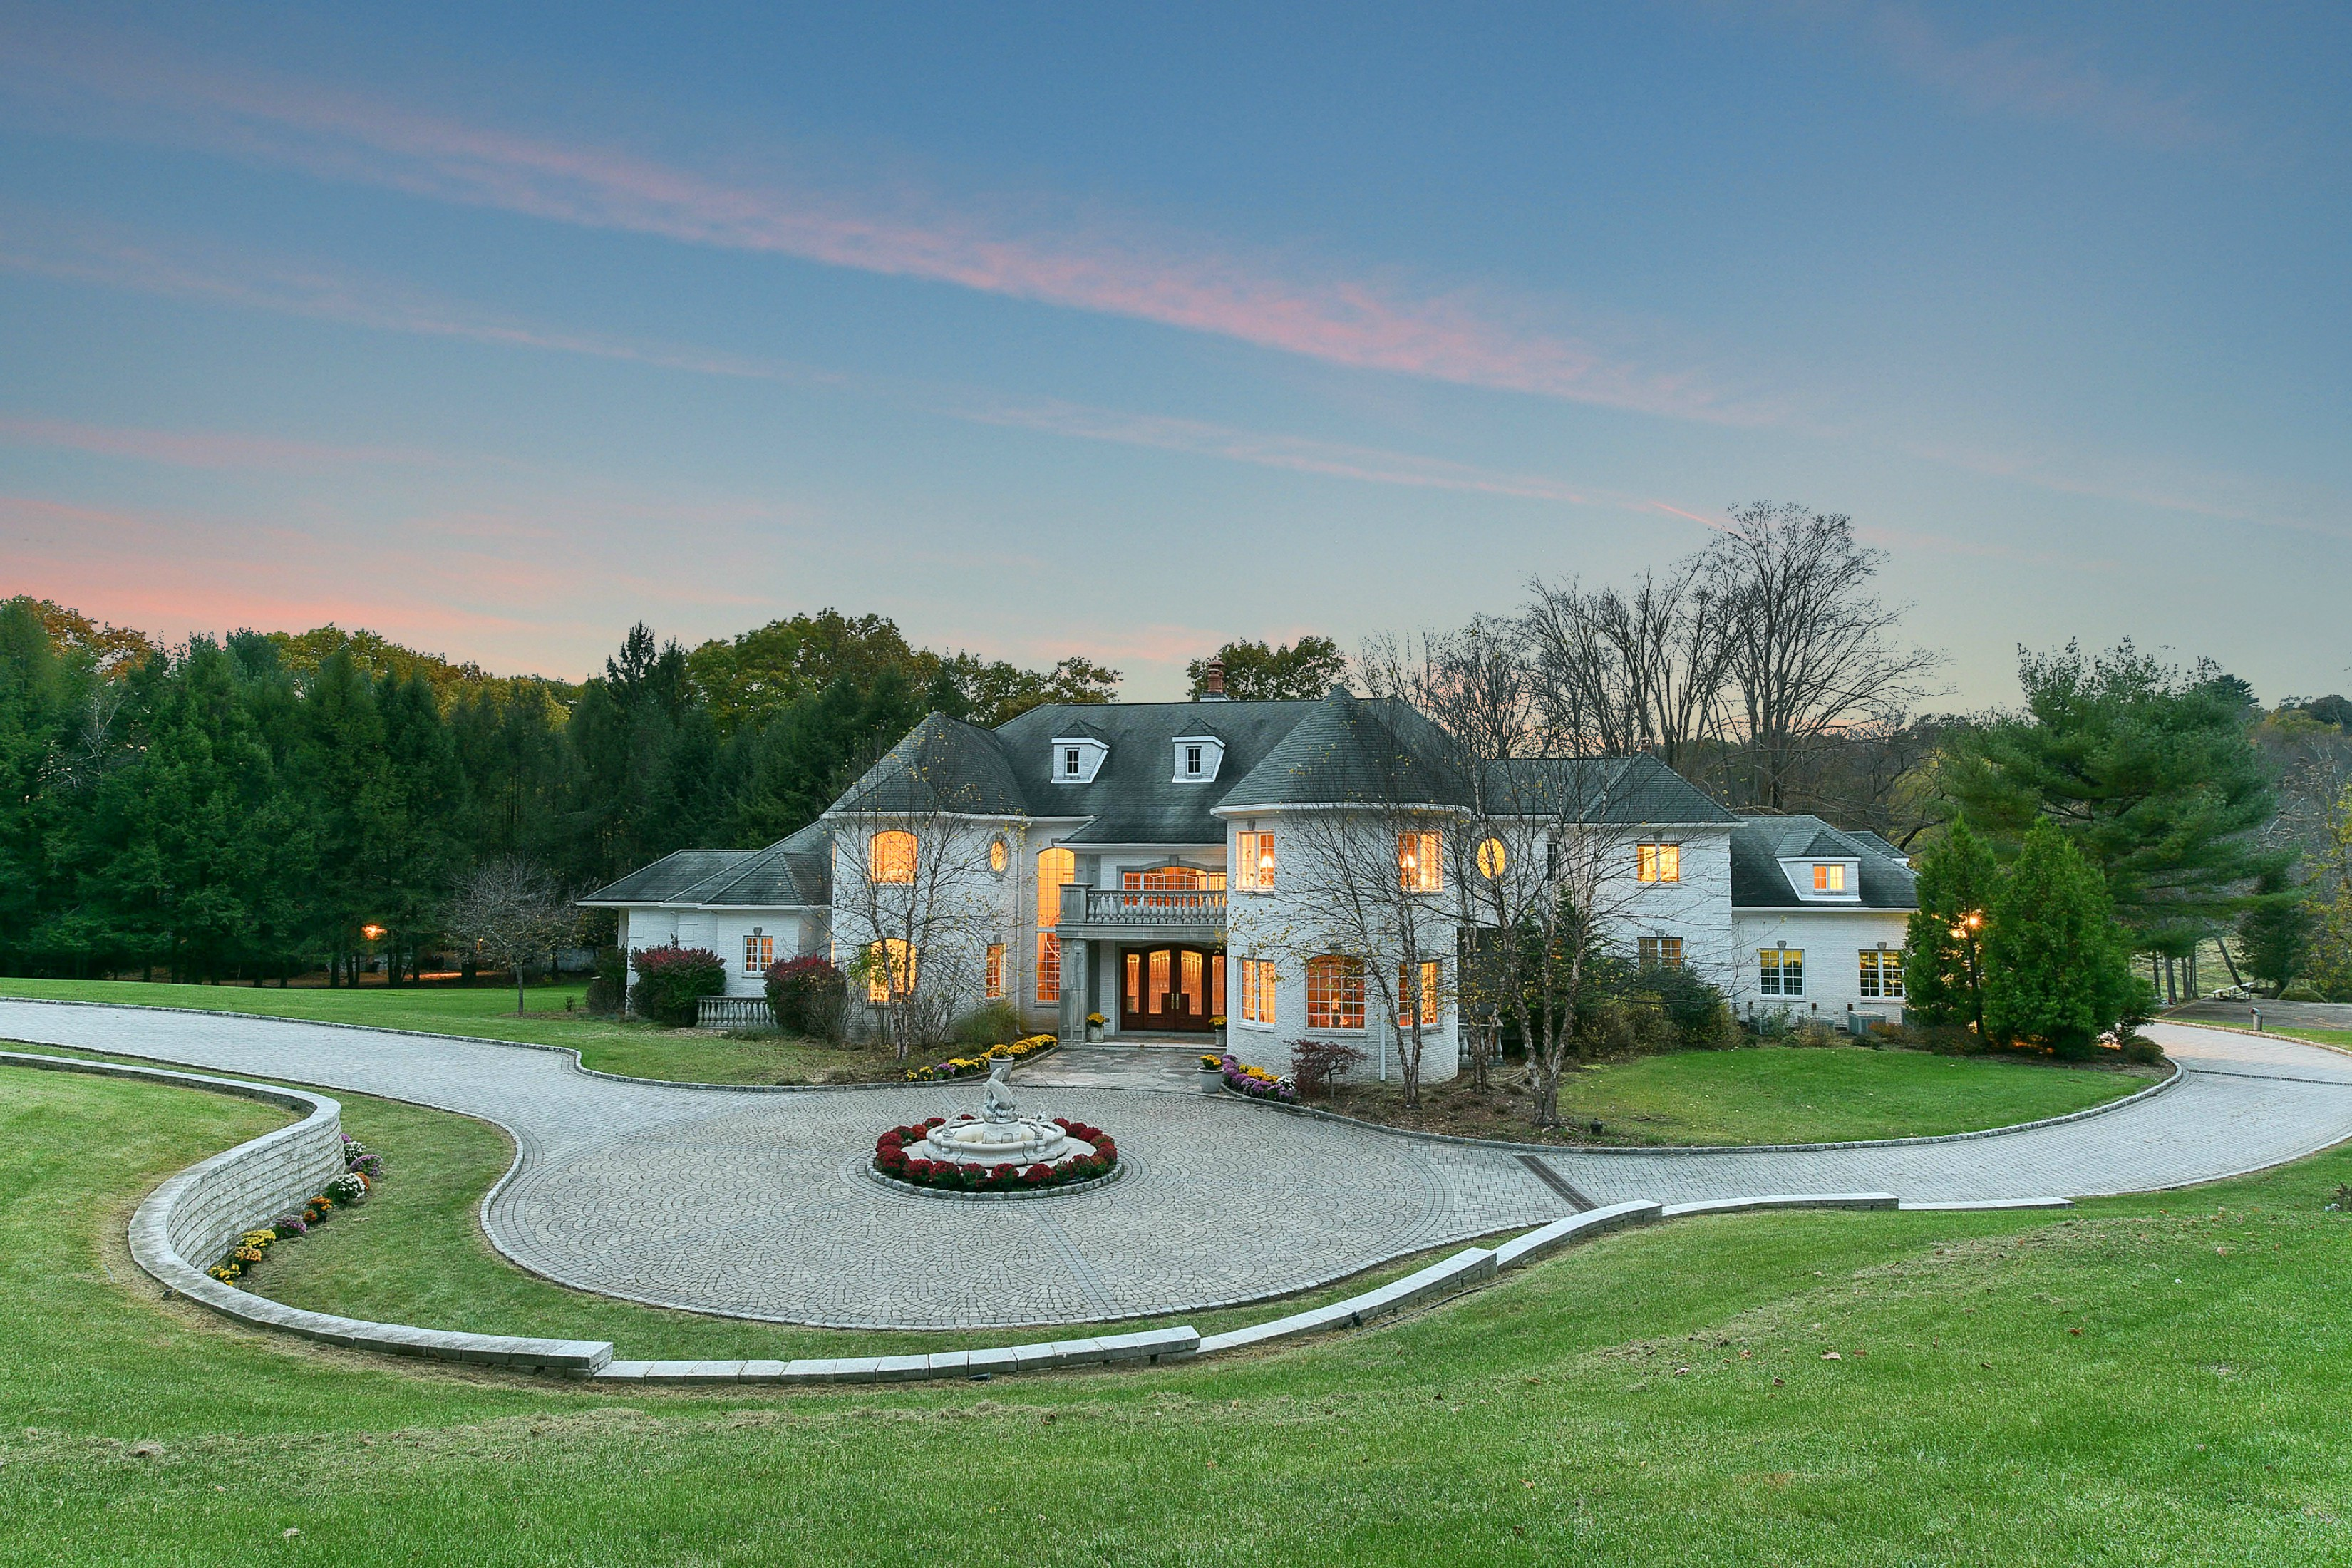 Single Family Home for Sale at Luxurious Manor Estate 229 E Saddle River Rd Saddle River, 07458 United States